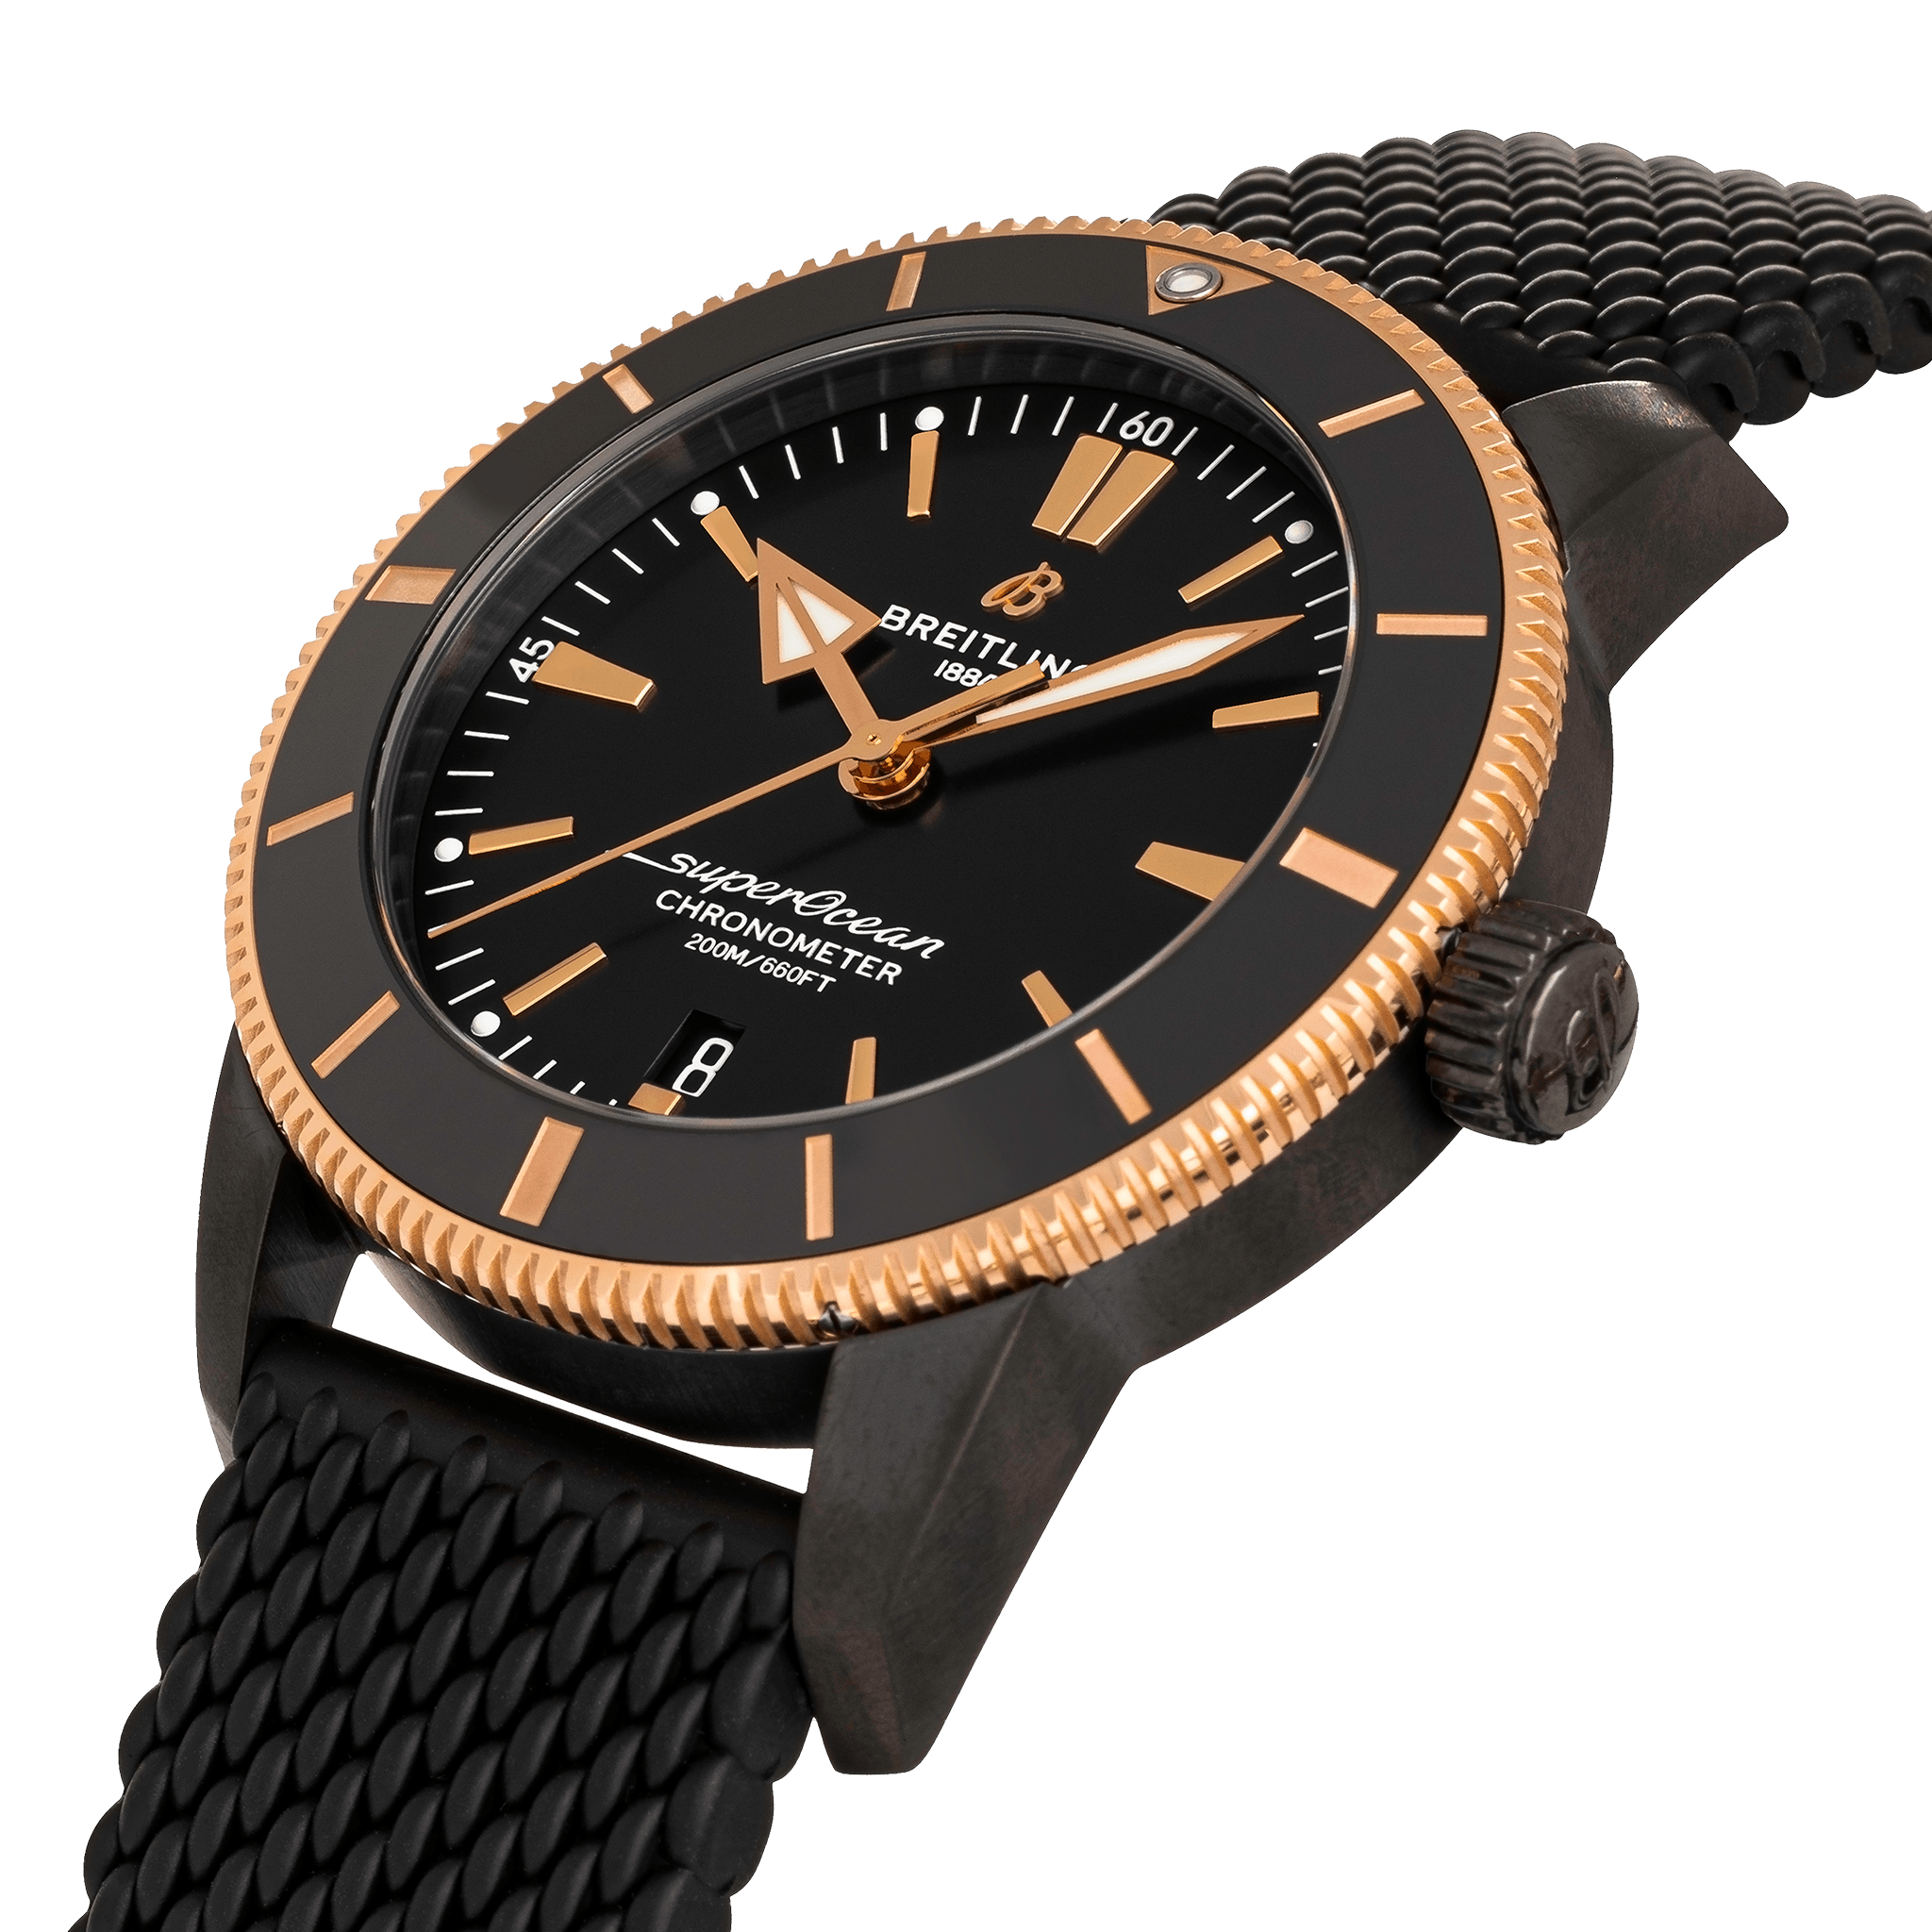 https://www.breitling.com/media/image/1/gallery_square/asset-version-b5a8135019/ub20303a1b1s1-superocean-heritage-b20-automatic-44-berverly-hills-limited-edition-three-quarter.png